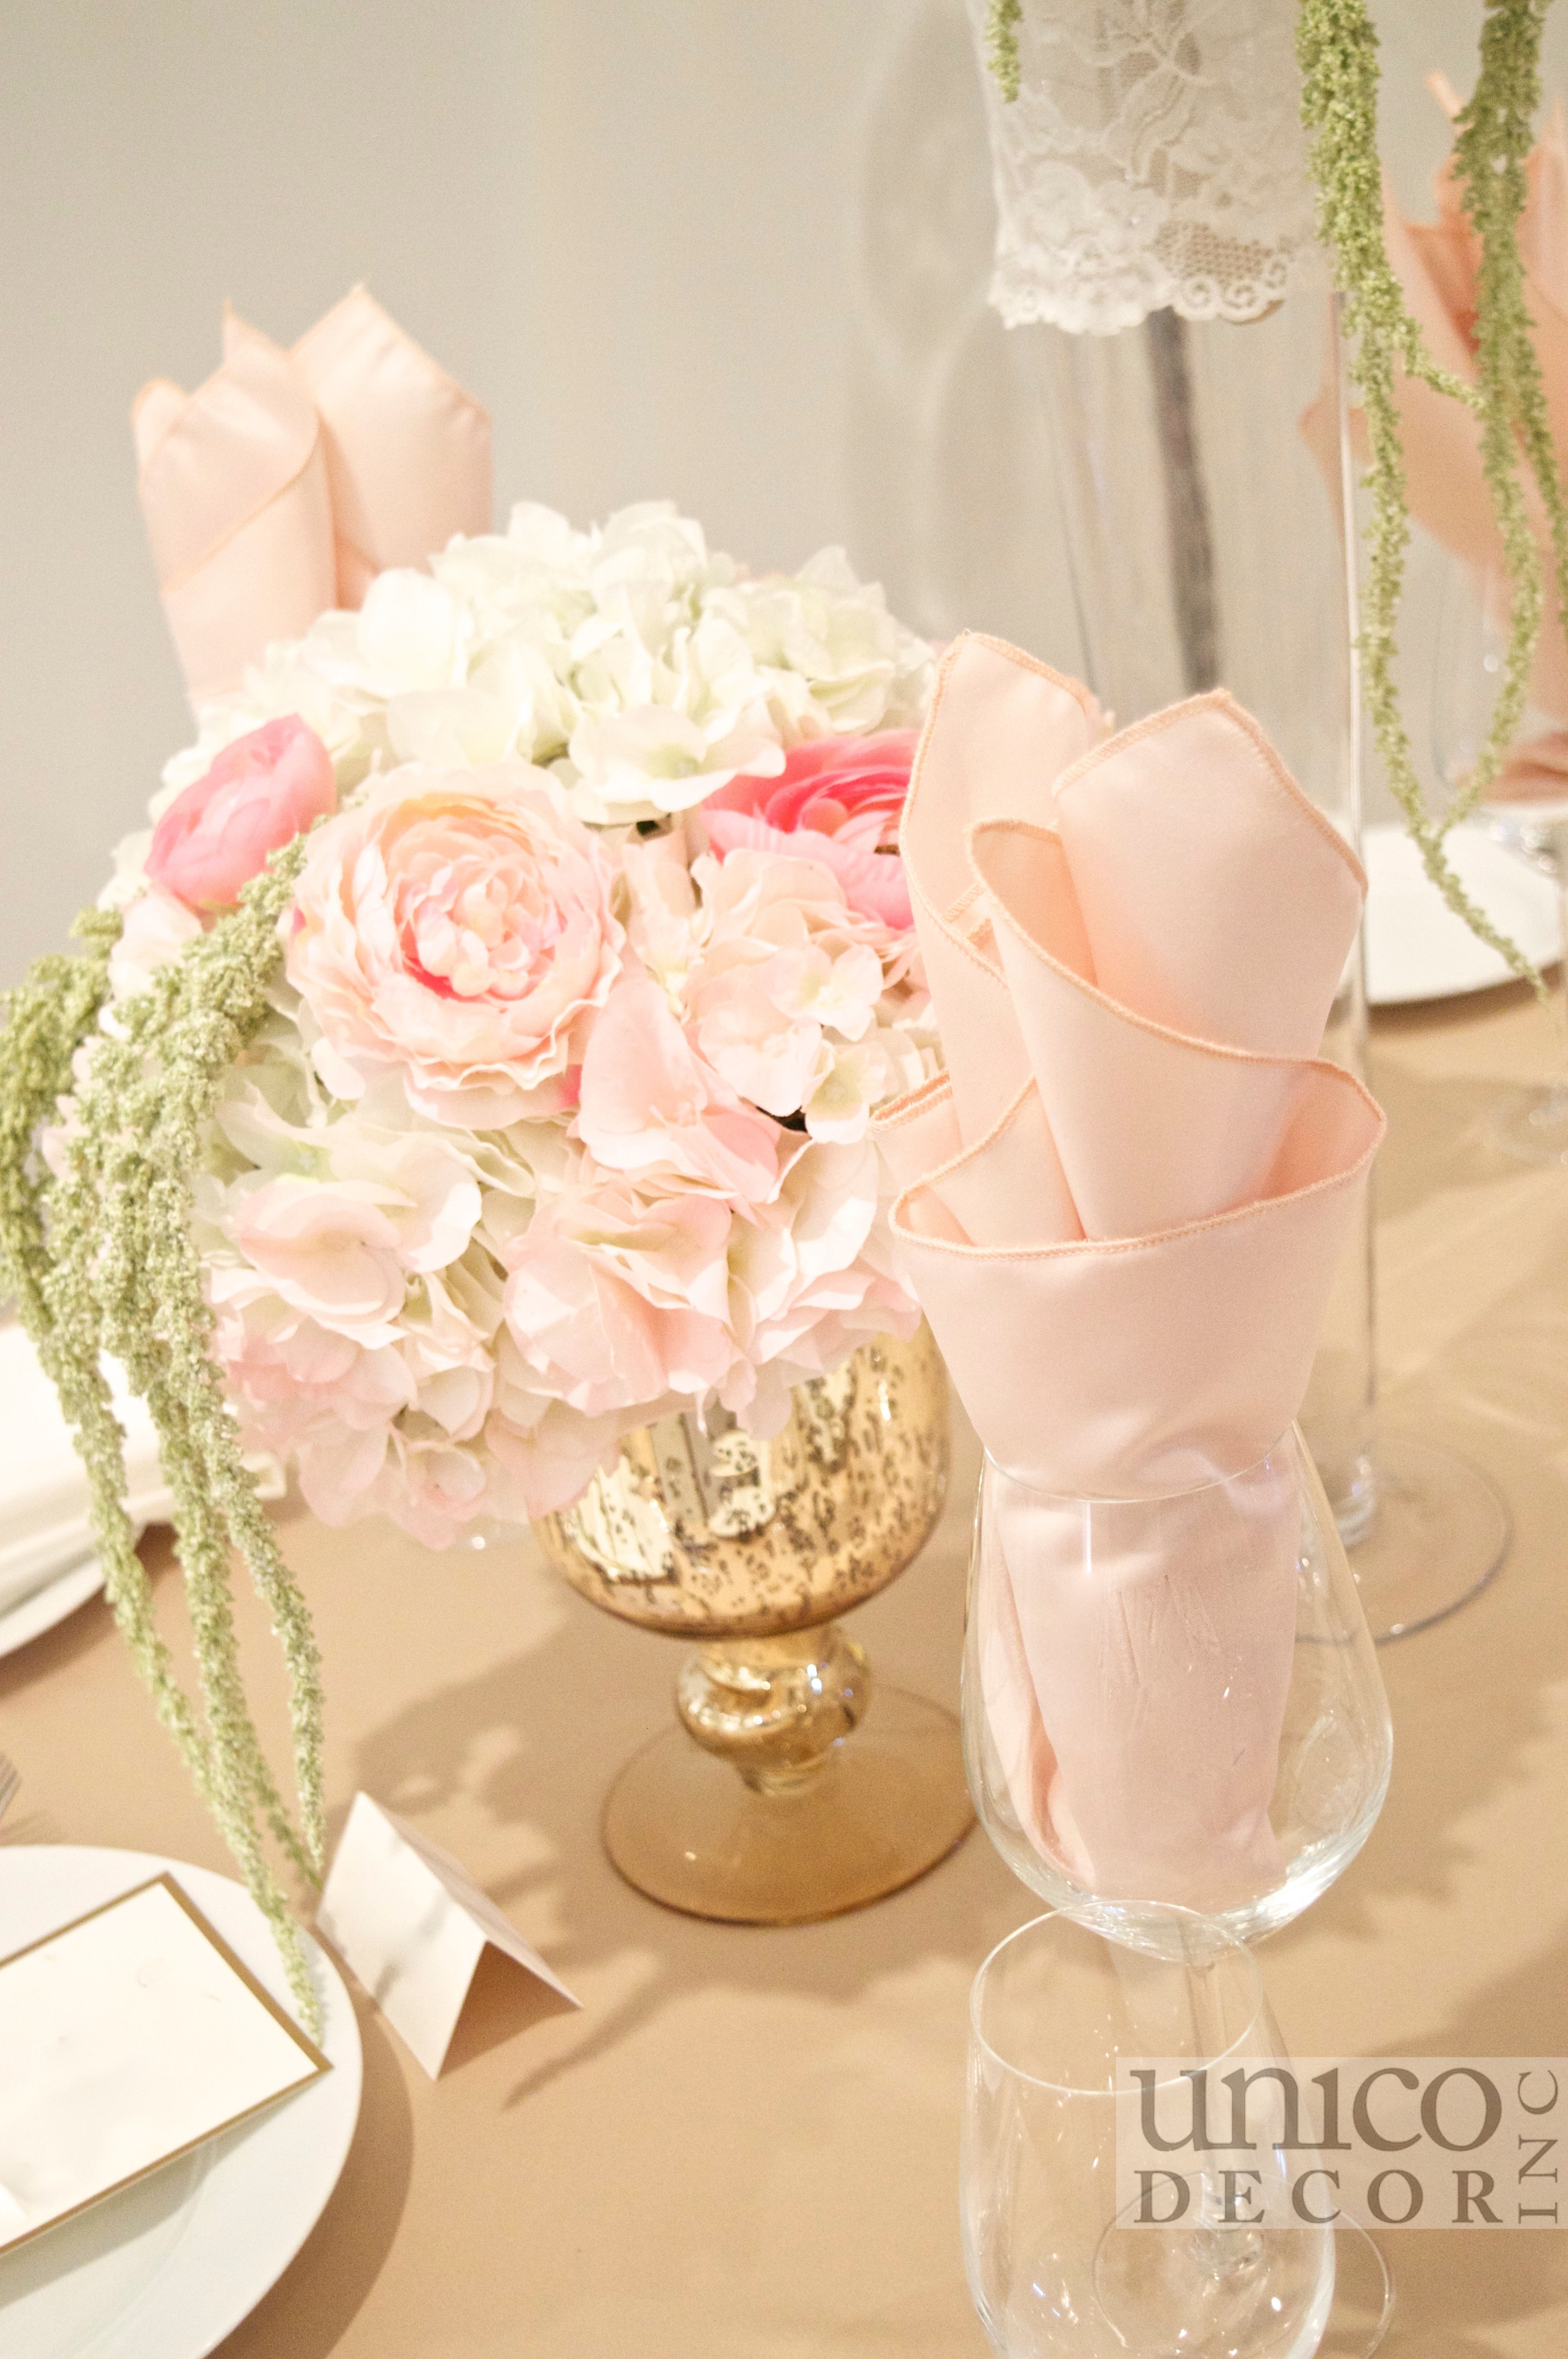 Blush pink wedding centrepiece by Unico Decor Inc.